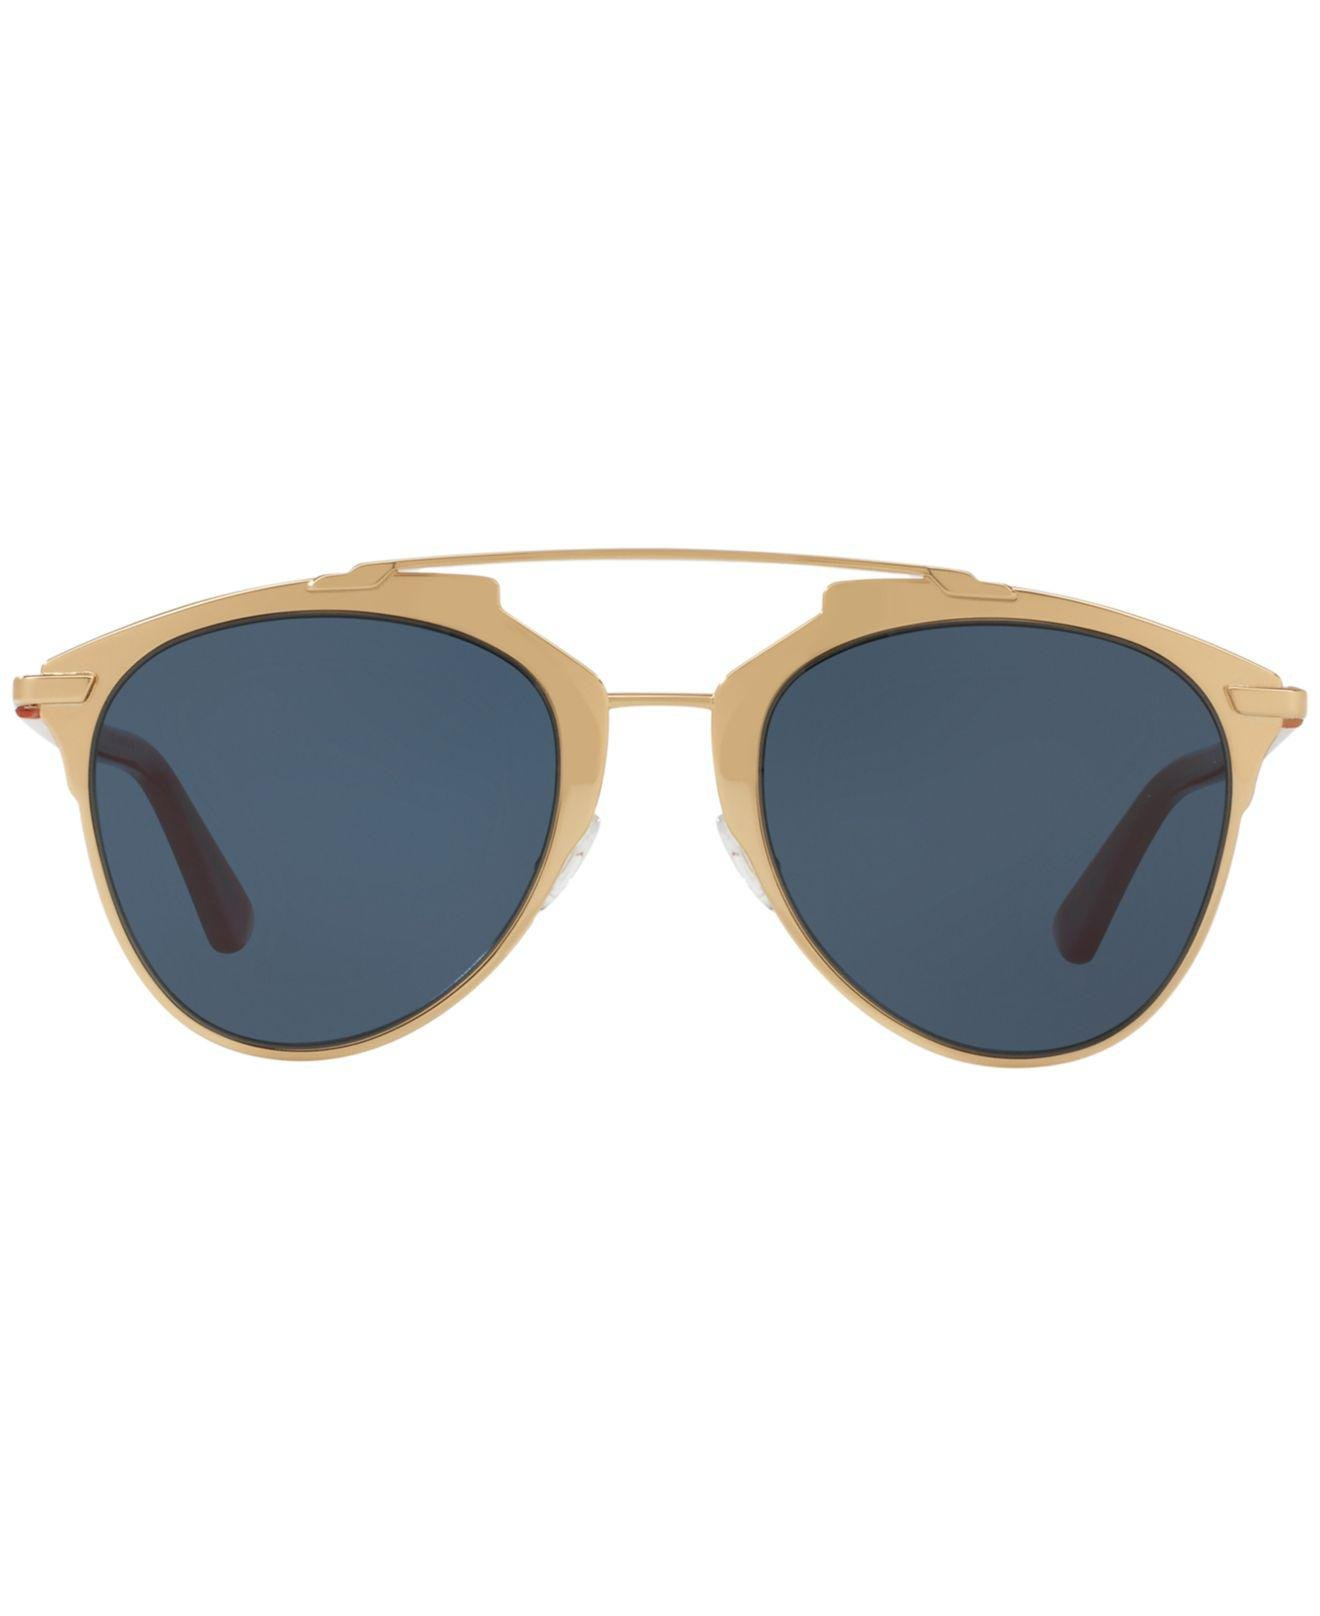 b45f23338c Lyst - Dior Women s Reflected Mirrored Brow Bar Aviator Sunglasses in Blue